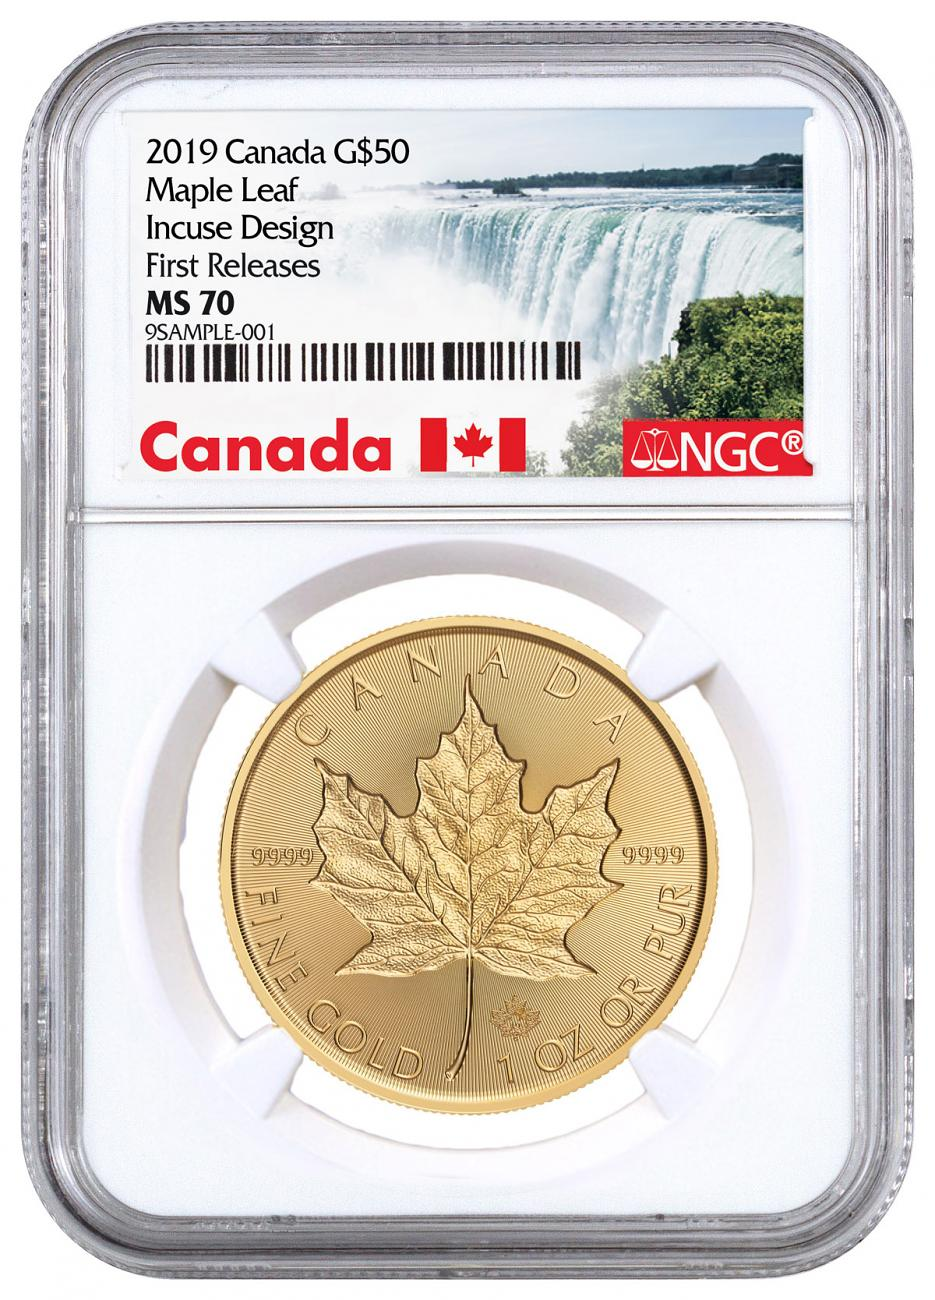 2019 Canada 1 oz Gold Maple Leaf - Incuse $50 Coin NGC MS70 FR Exclusive Canada Label